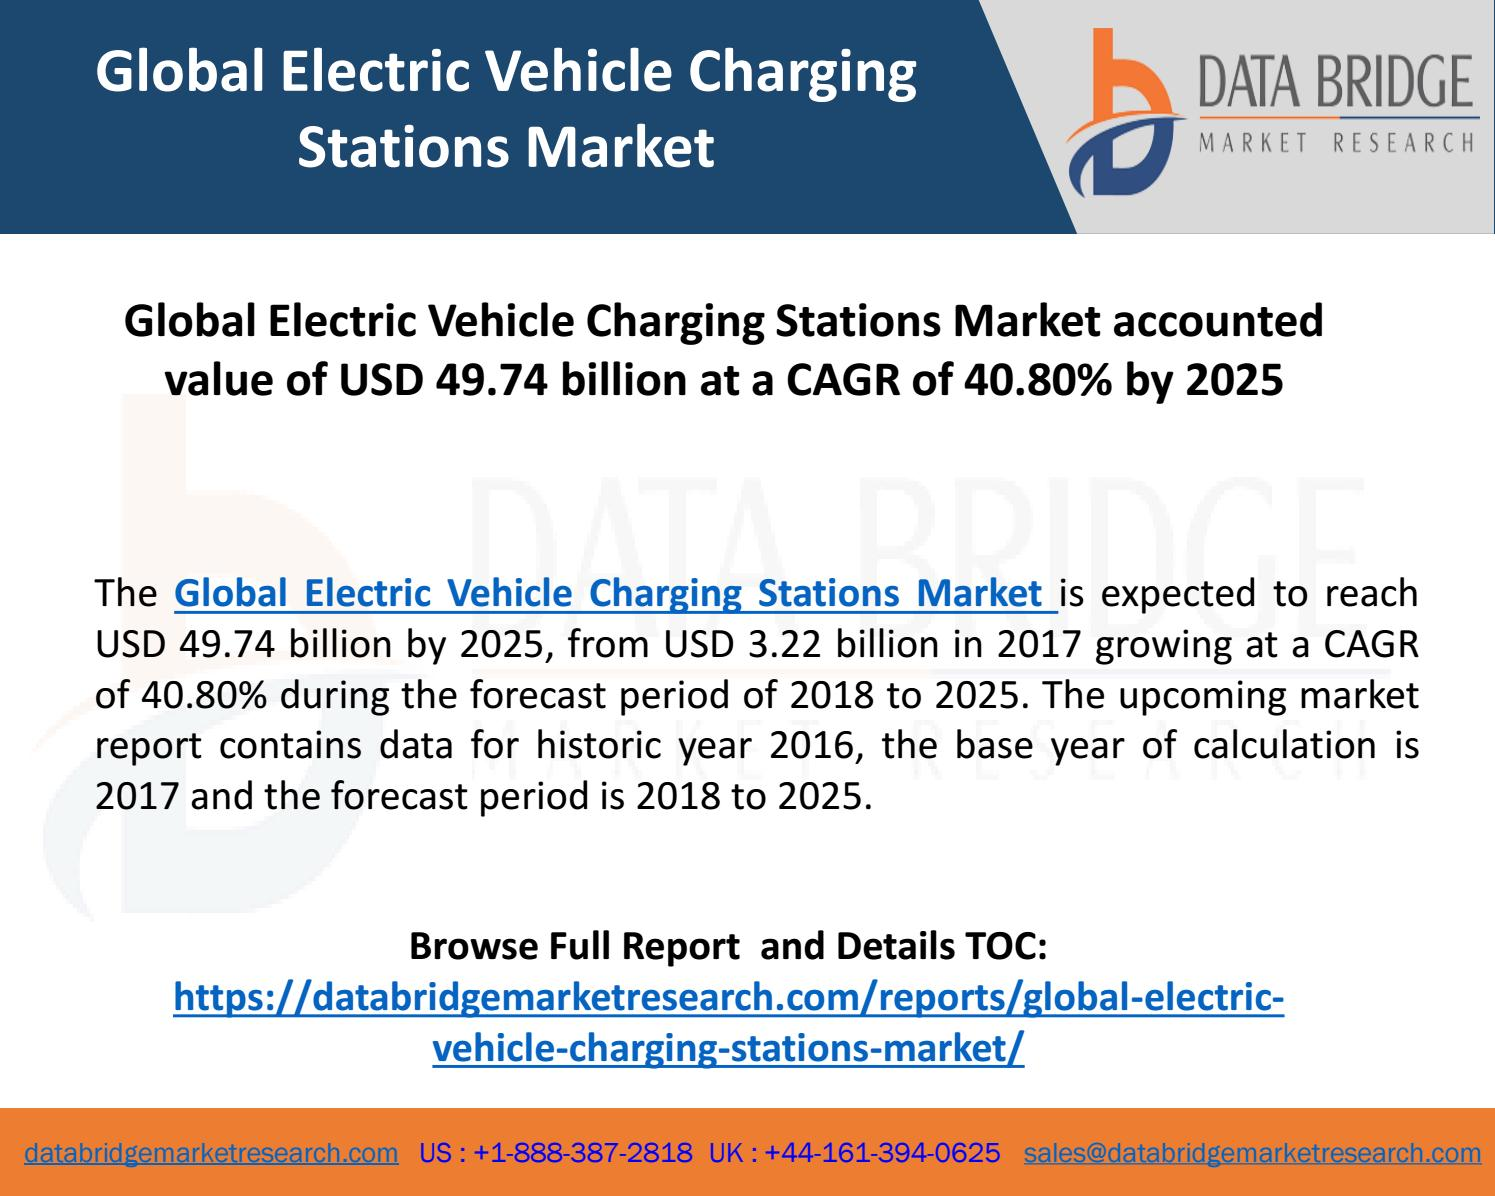 Global Electric Vehicle Charging Stations Market Industry Trends And Forecast To 2025 By Patilsourbh291 Issuu